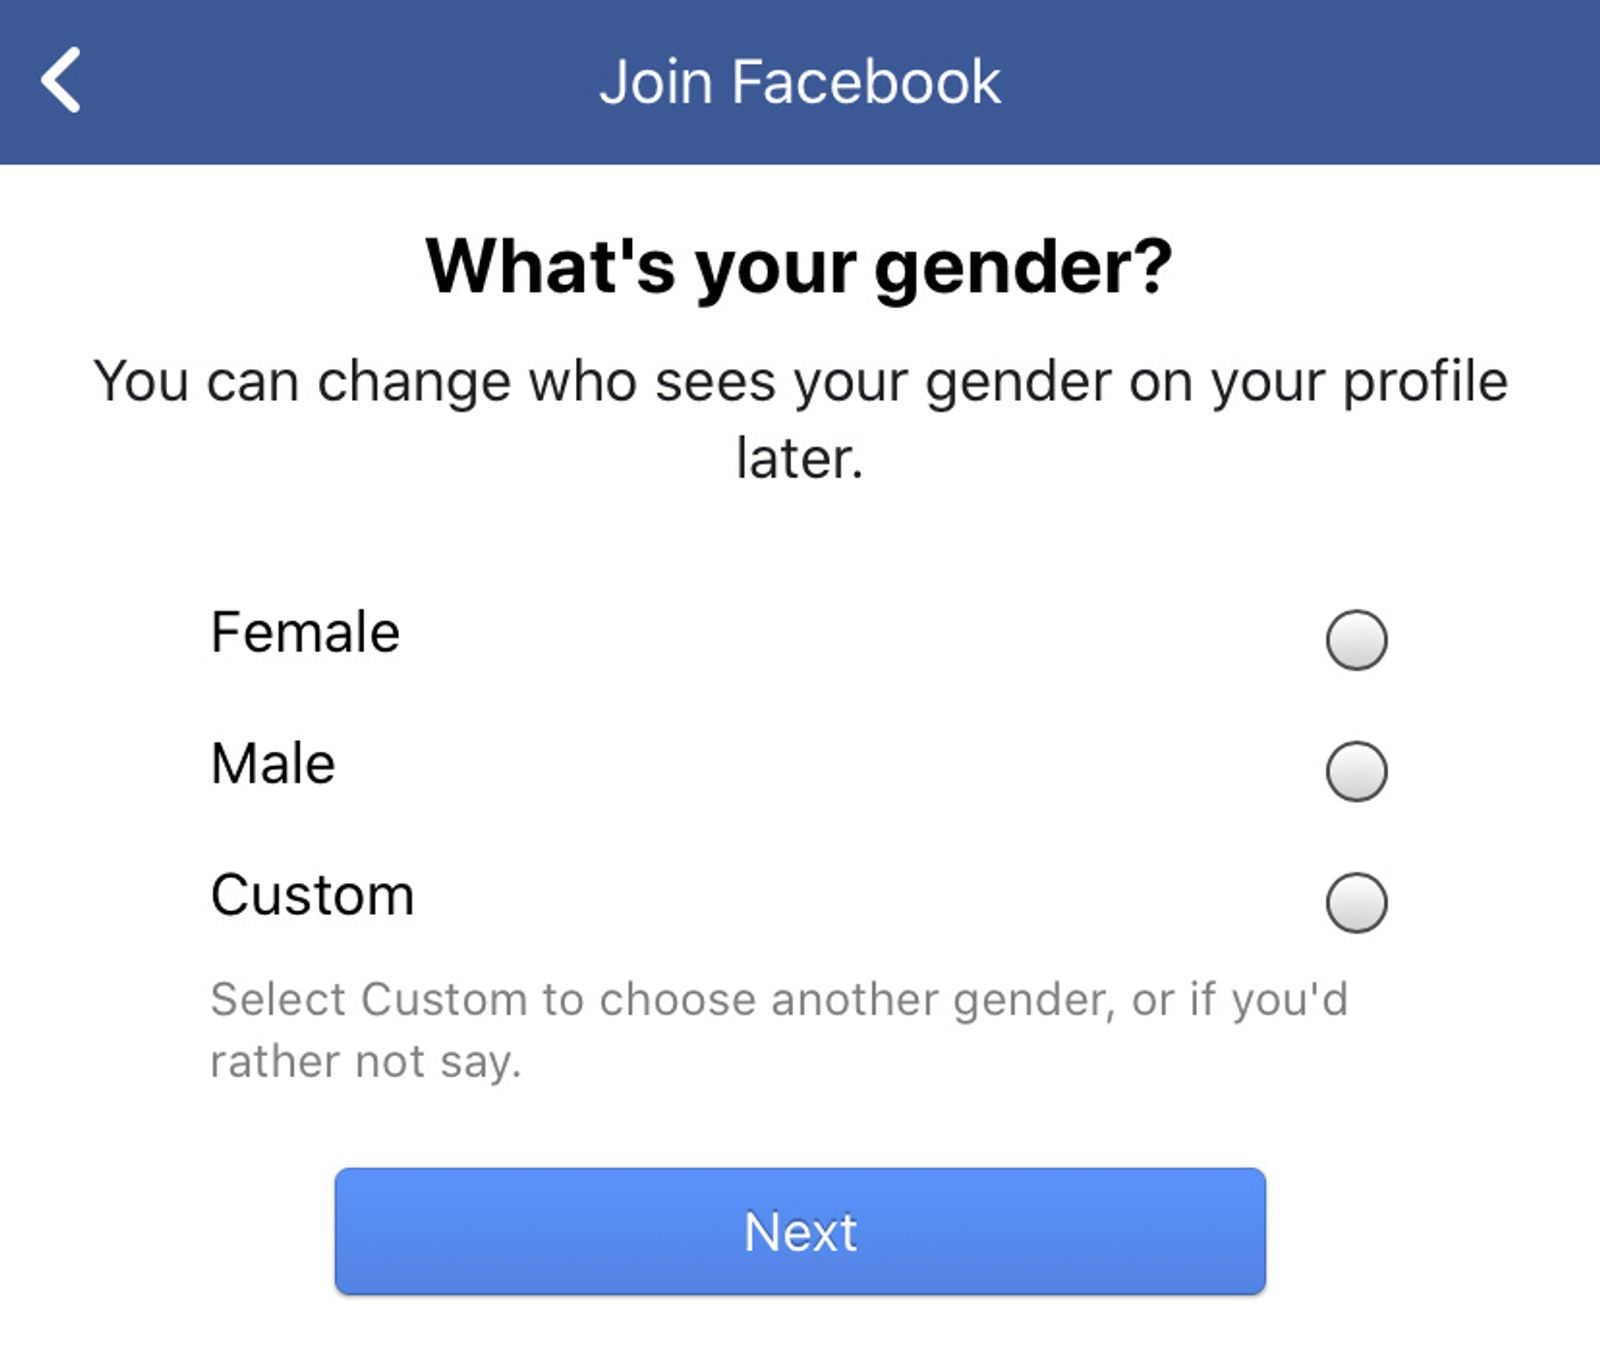 Facebook gender selector: male, female, custom. Select custom to choose another gender, or if you'd rather not say.